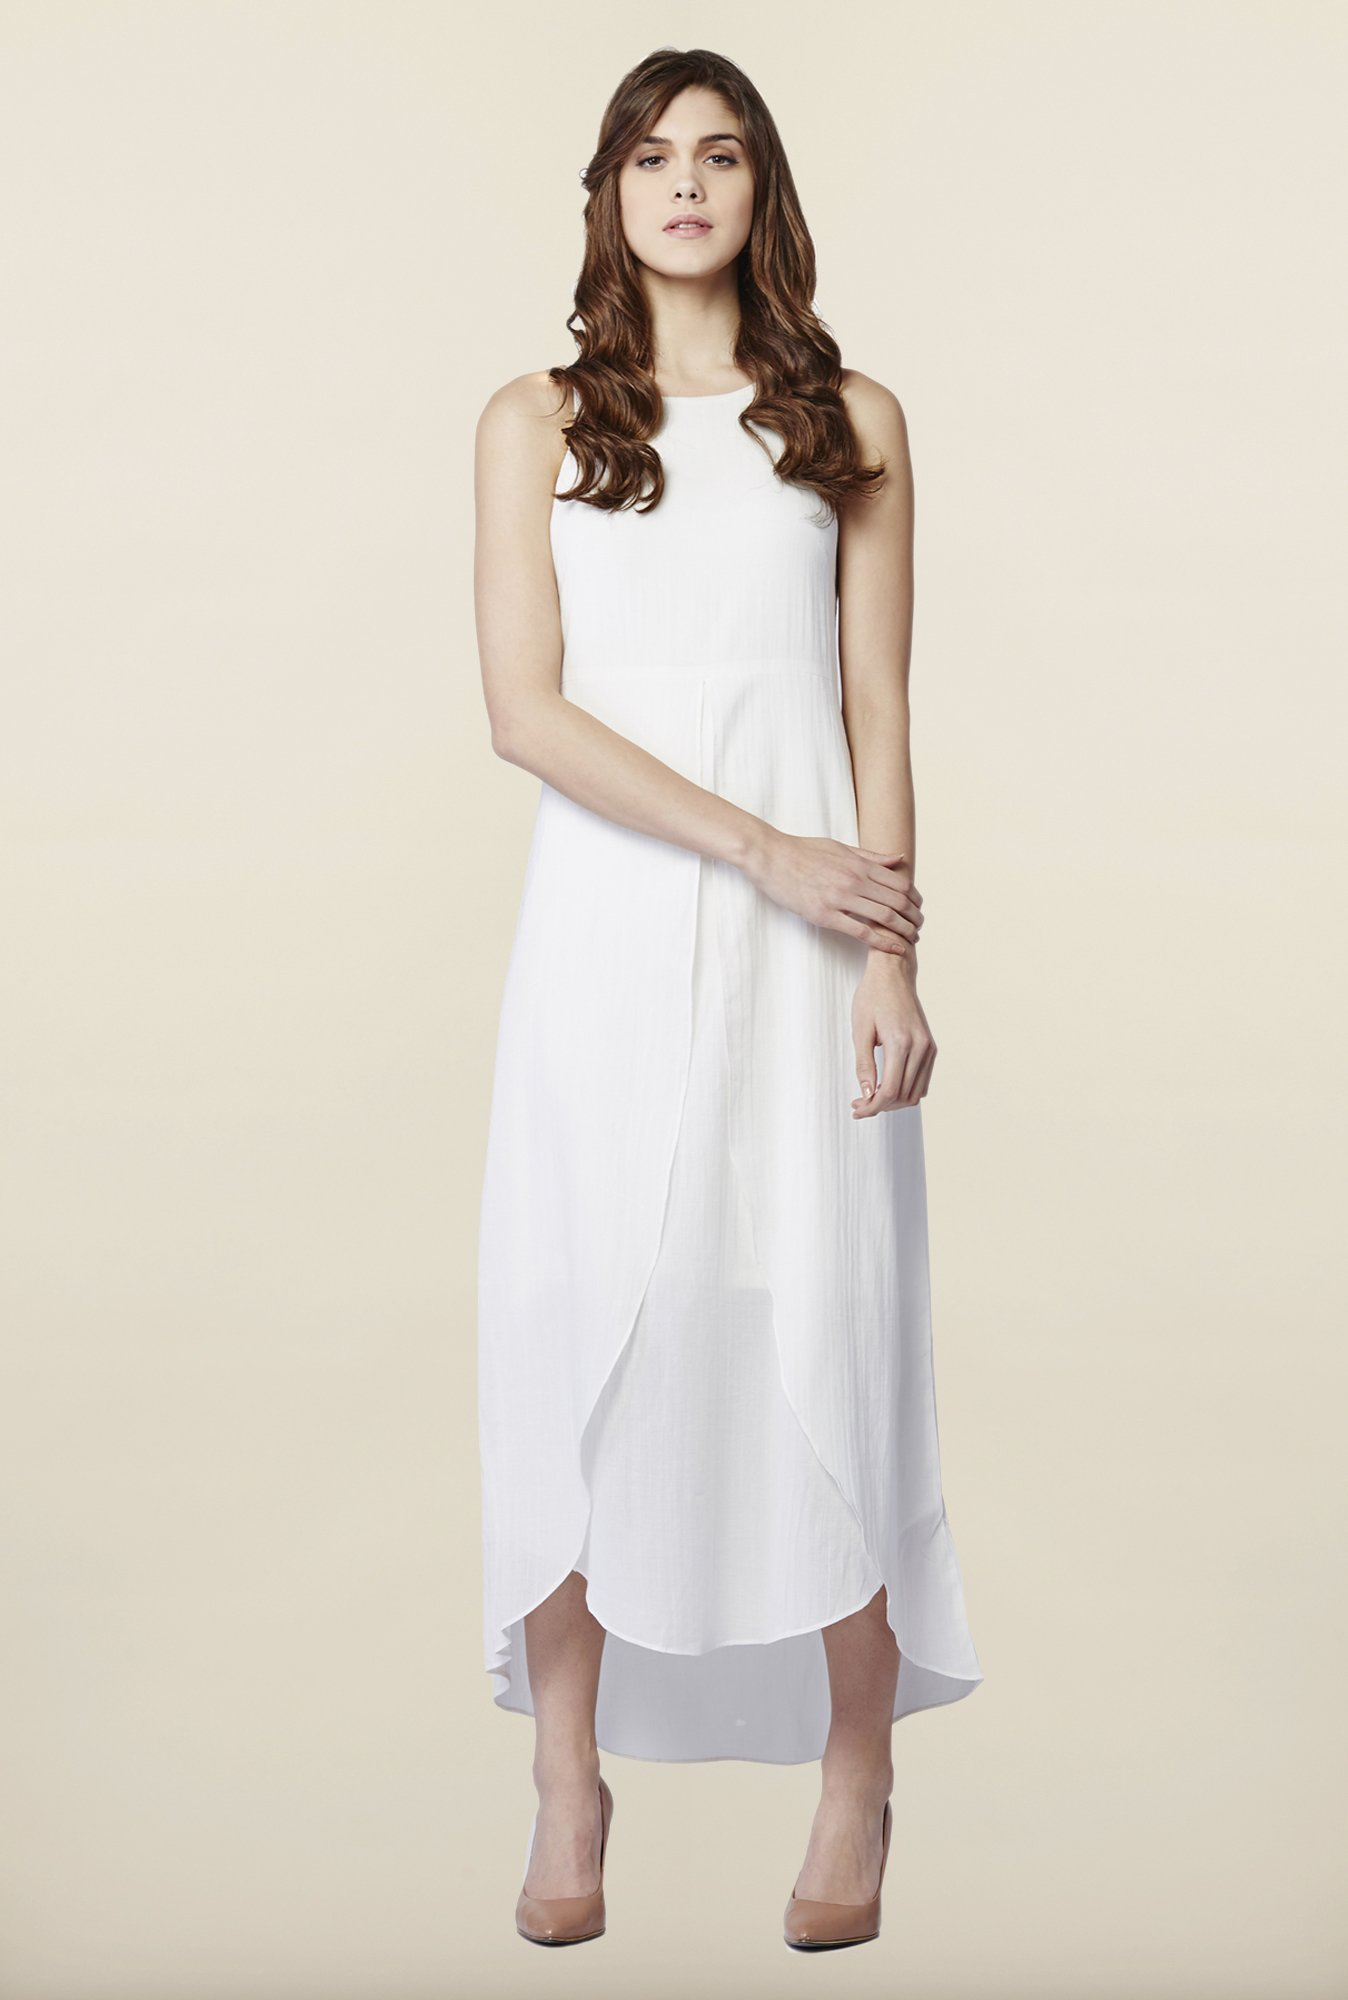 AND White Solid Casual Dress